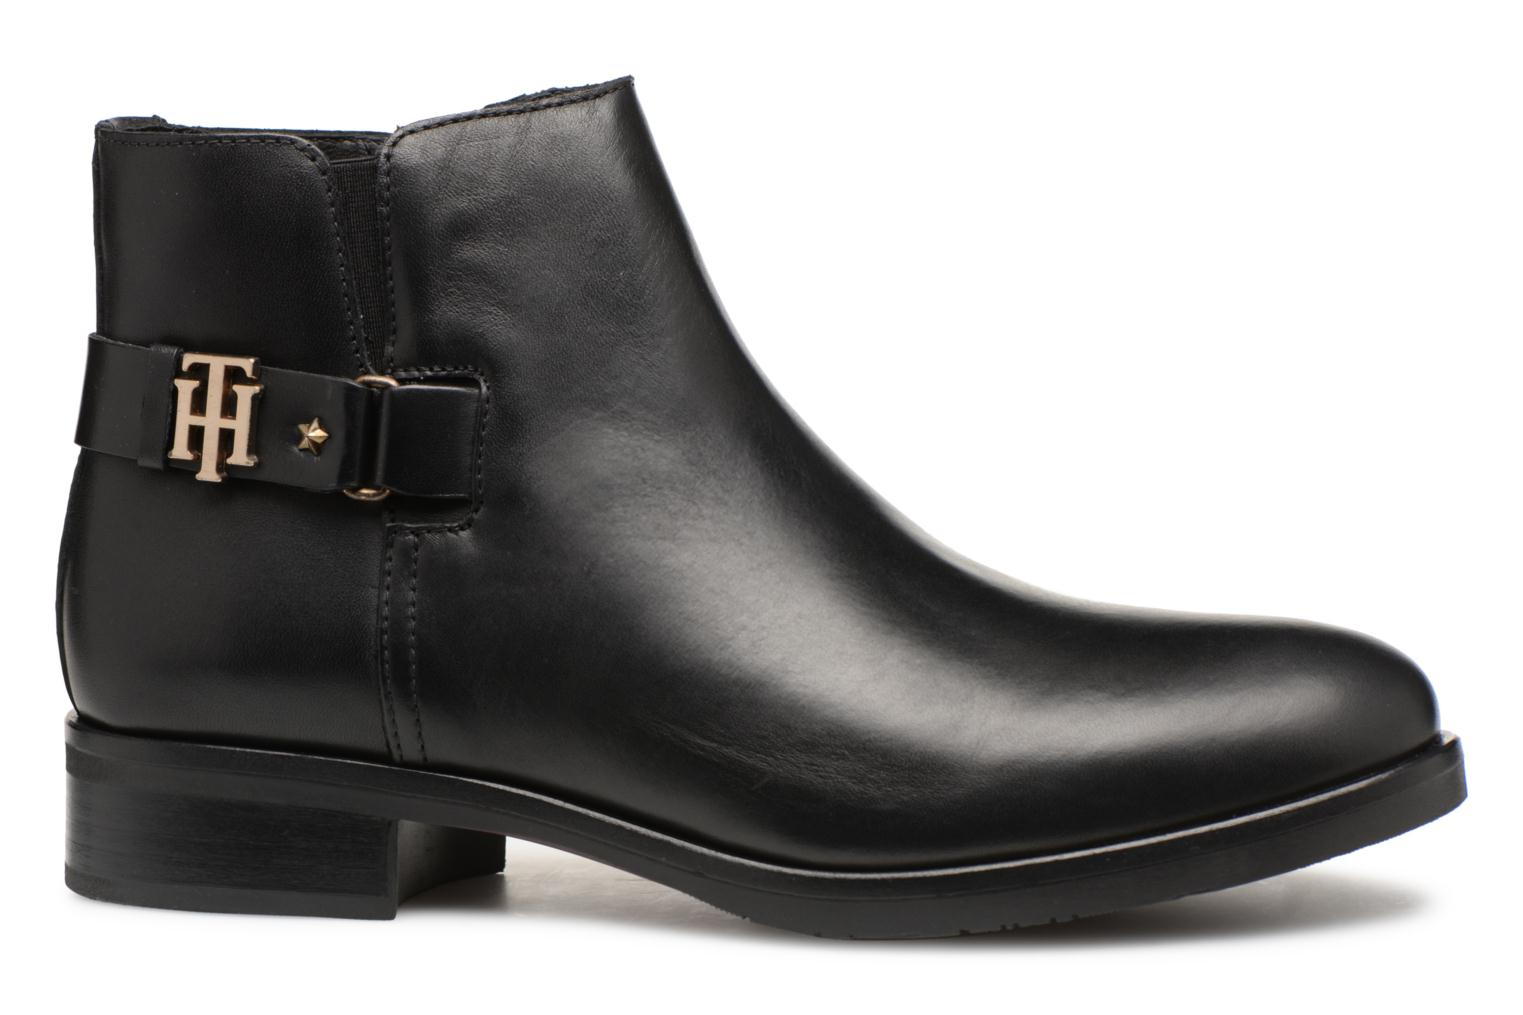 Bottines et boots Tommy Hilfiger TH BUCKLE LEATHER BOOTIE Noir vue derrière